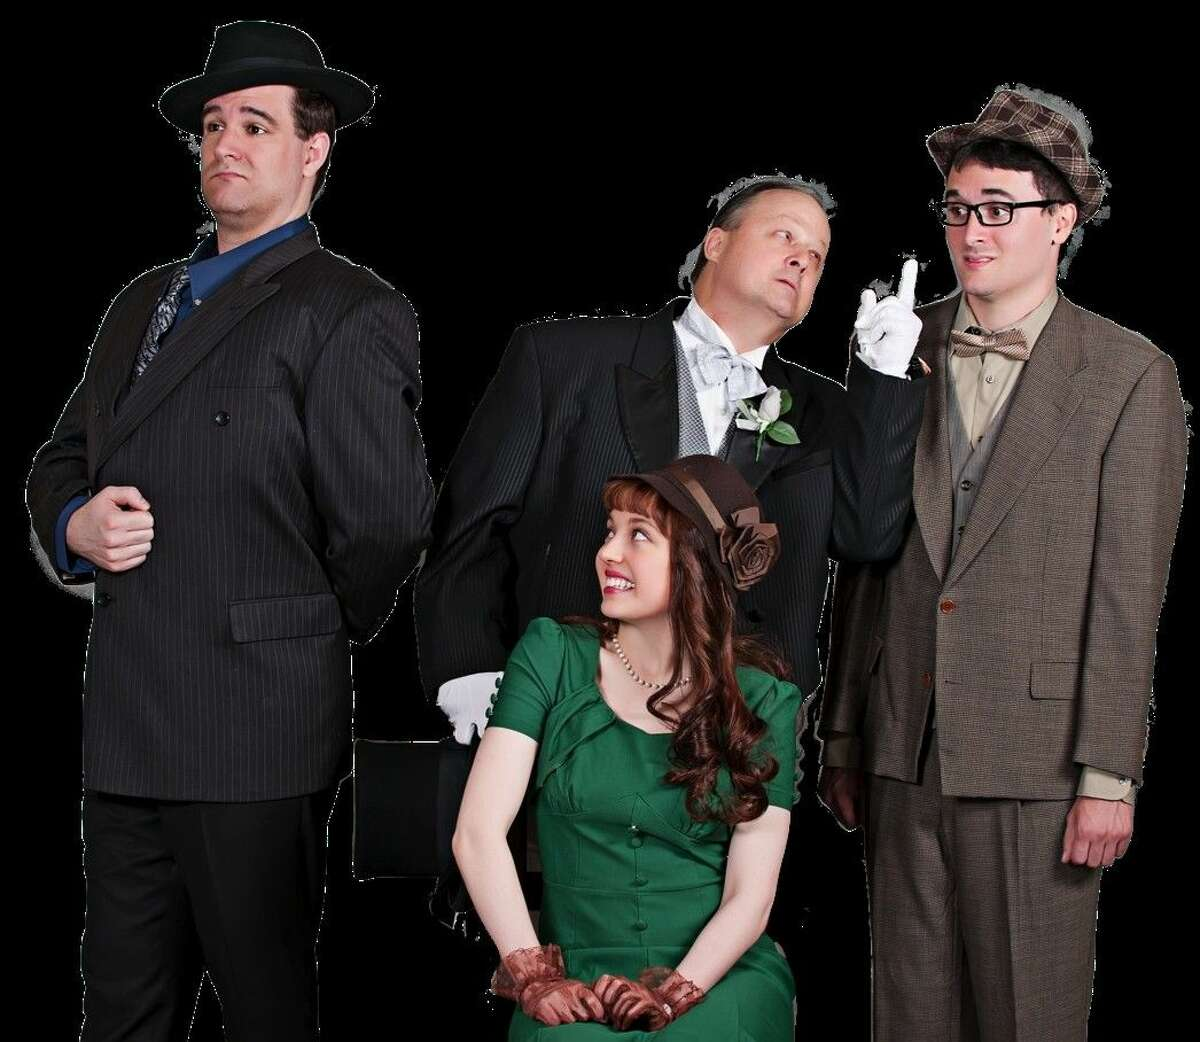 Pictured from left, Justin Finch (Tito Merelli), Kristen Malisewski (Maggie), Richard Hahn (Saunders), and Jordan O'Neal (Max) will perform in Houston Family Arts Center's production of Lend Me a Tenor. Performances are set for Sept. 4-27.